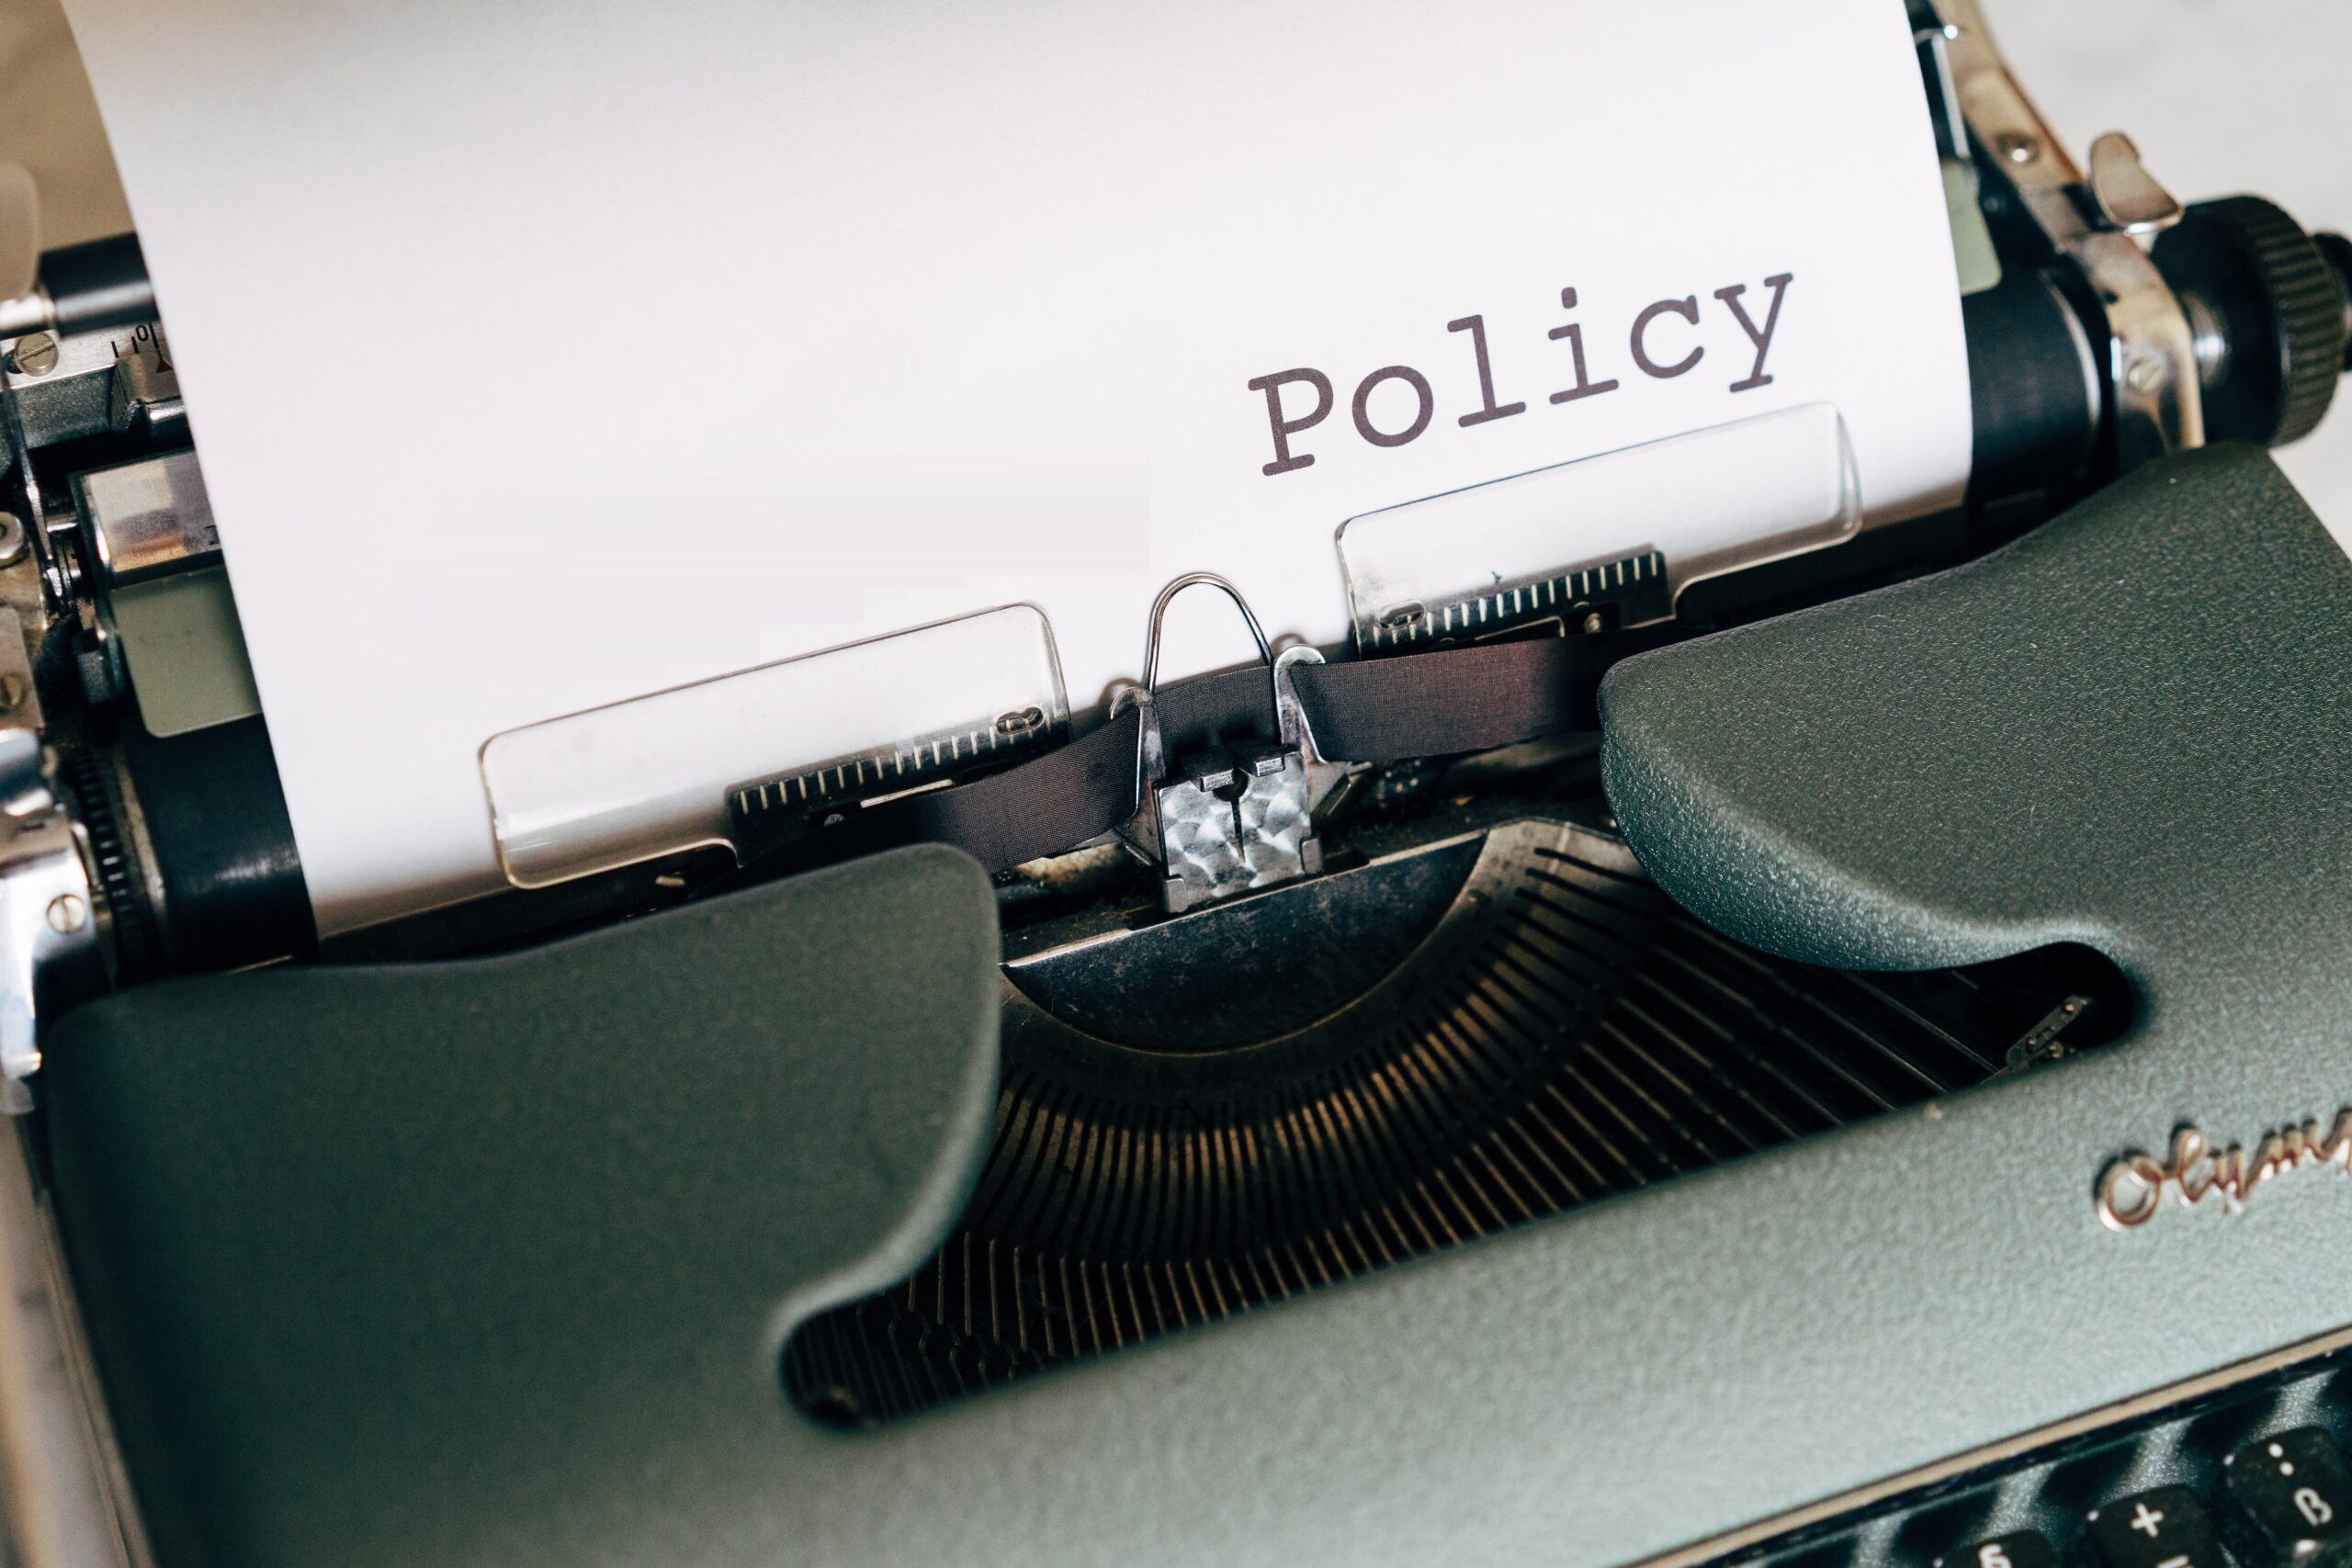 Should Leaders Rely on Policy and Process?